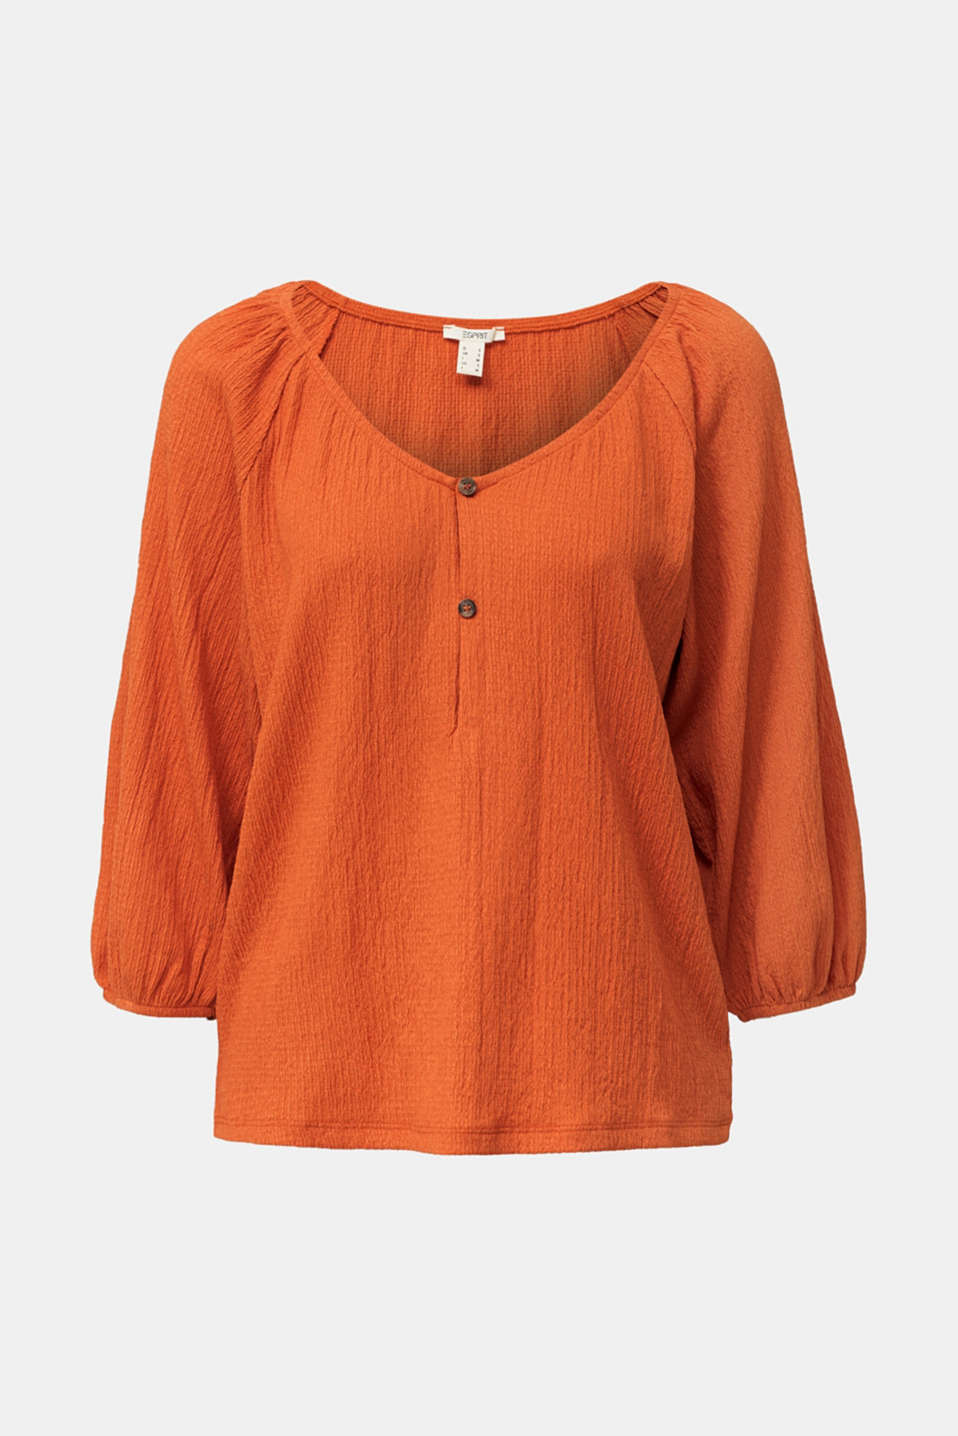 Textured blouse top, recycled, RUST ORANGE, detail image number 6